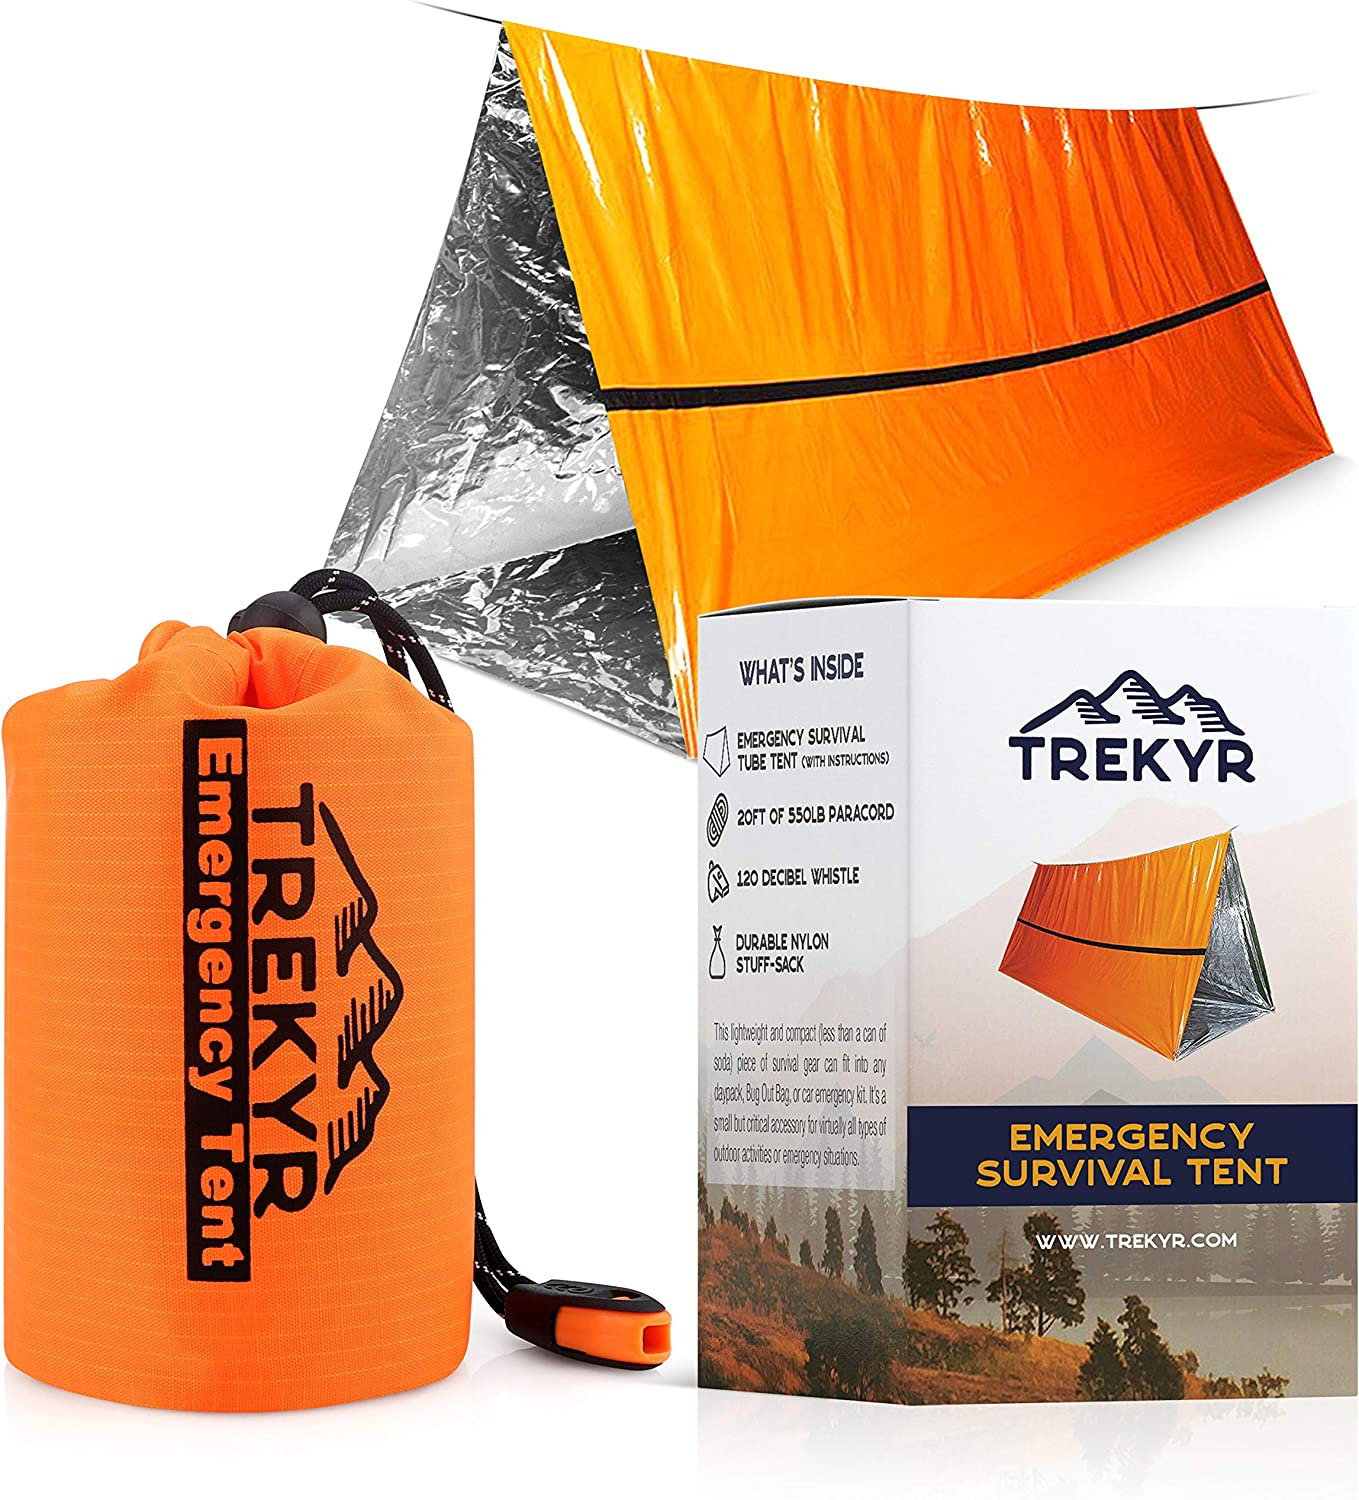 TREKYR Survival Shelter - Emergency Tent 2 Person Waterproof for Hiking Survival Kit - SurvivalTent for Your Bug Out Bag or Disaster Kit -Tube Tent Has Instructions +Emergency Whistle + Paracord